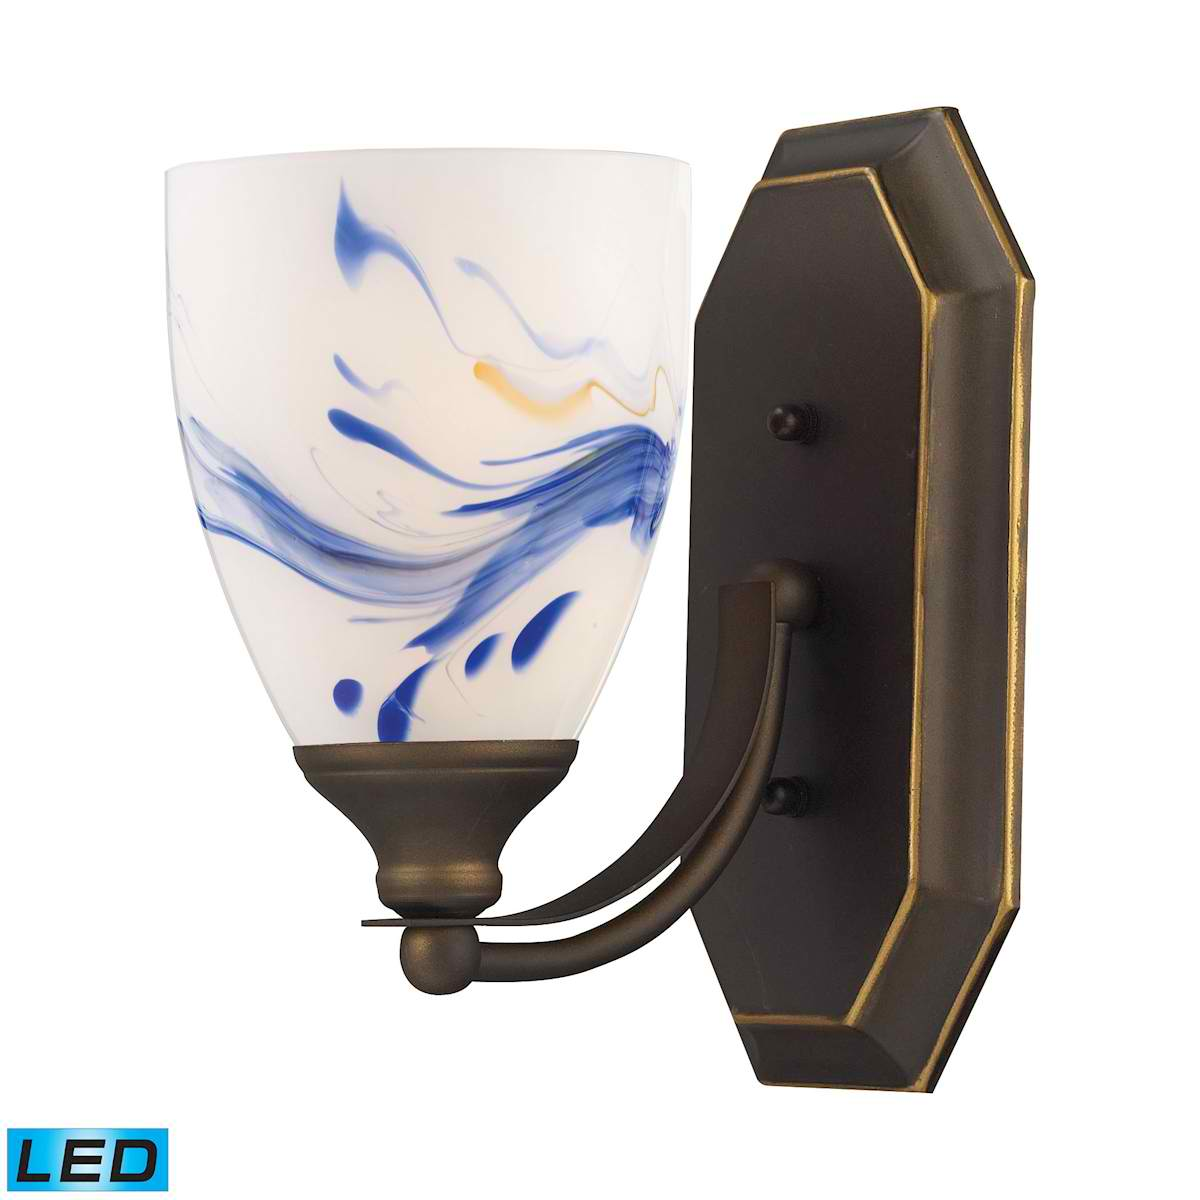 1 Light Vanity in Aged Bronze and Mountain Glass - LED Offering Up To 800 Lumens (60 Watt Equivalent)